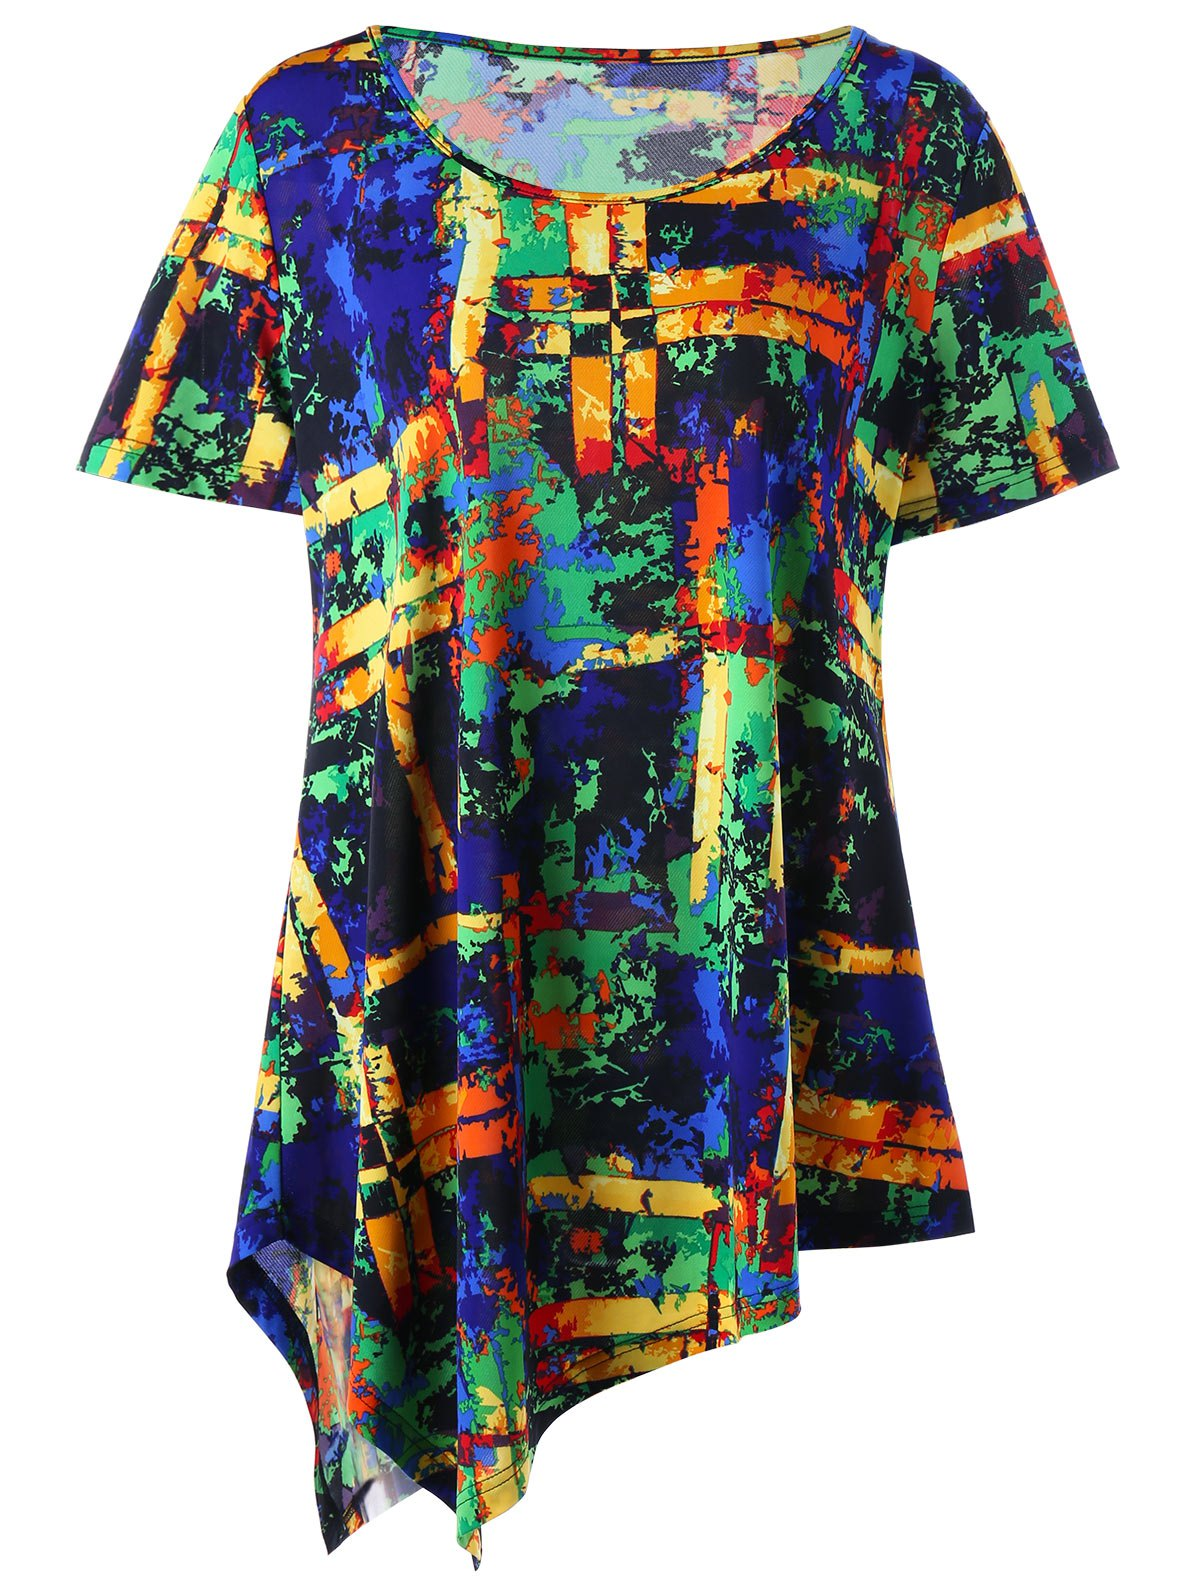 Plus Size Multi All-printed Long Asymmetric T-shirtWOMEN<br><br>Size: 5XL; Color: COLORMIX; Material: Cotton,Cotton Blends,Polyester; Shirt Length: Long; Sleeve Length: Short; Collar: Round Neck; Style: Fashion; Season: Spring,Summer; Pattern Type: Print; Weight: 0.2500kg; Package Contents: 1 x Tee;